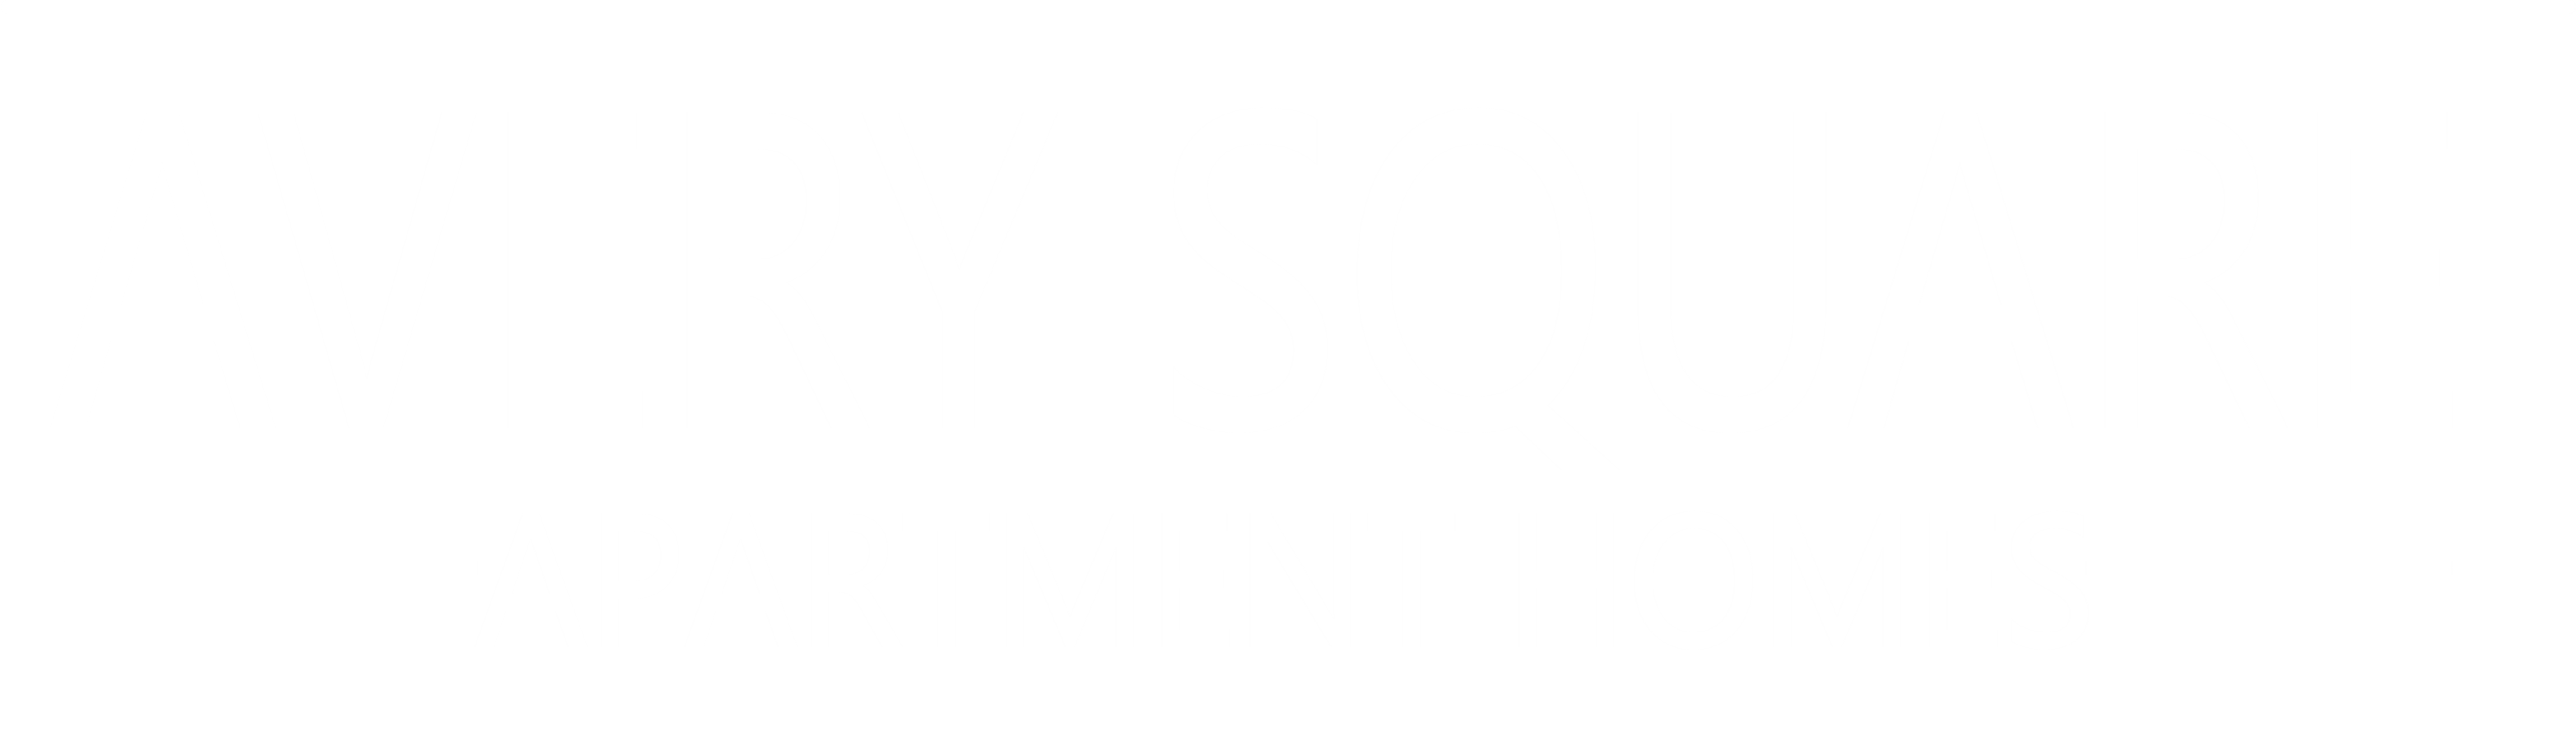 Avery Square Apartments